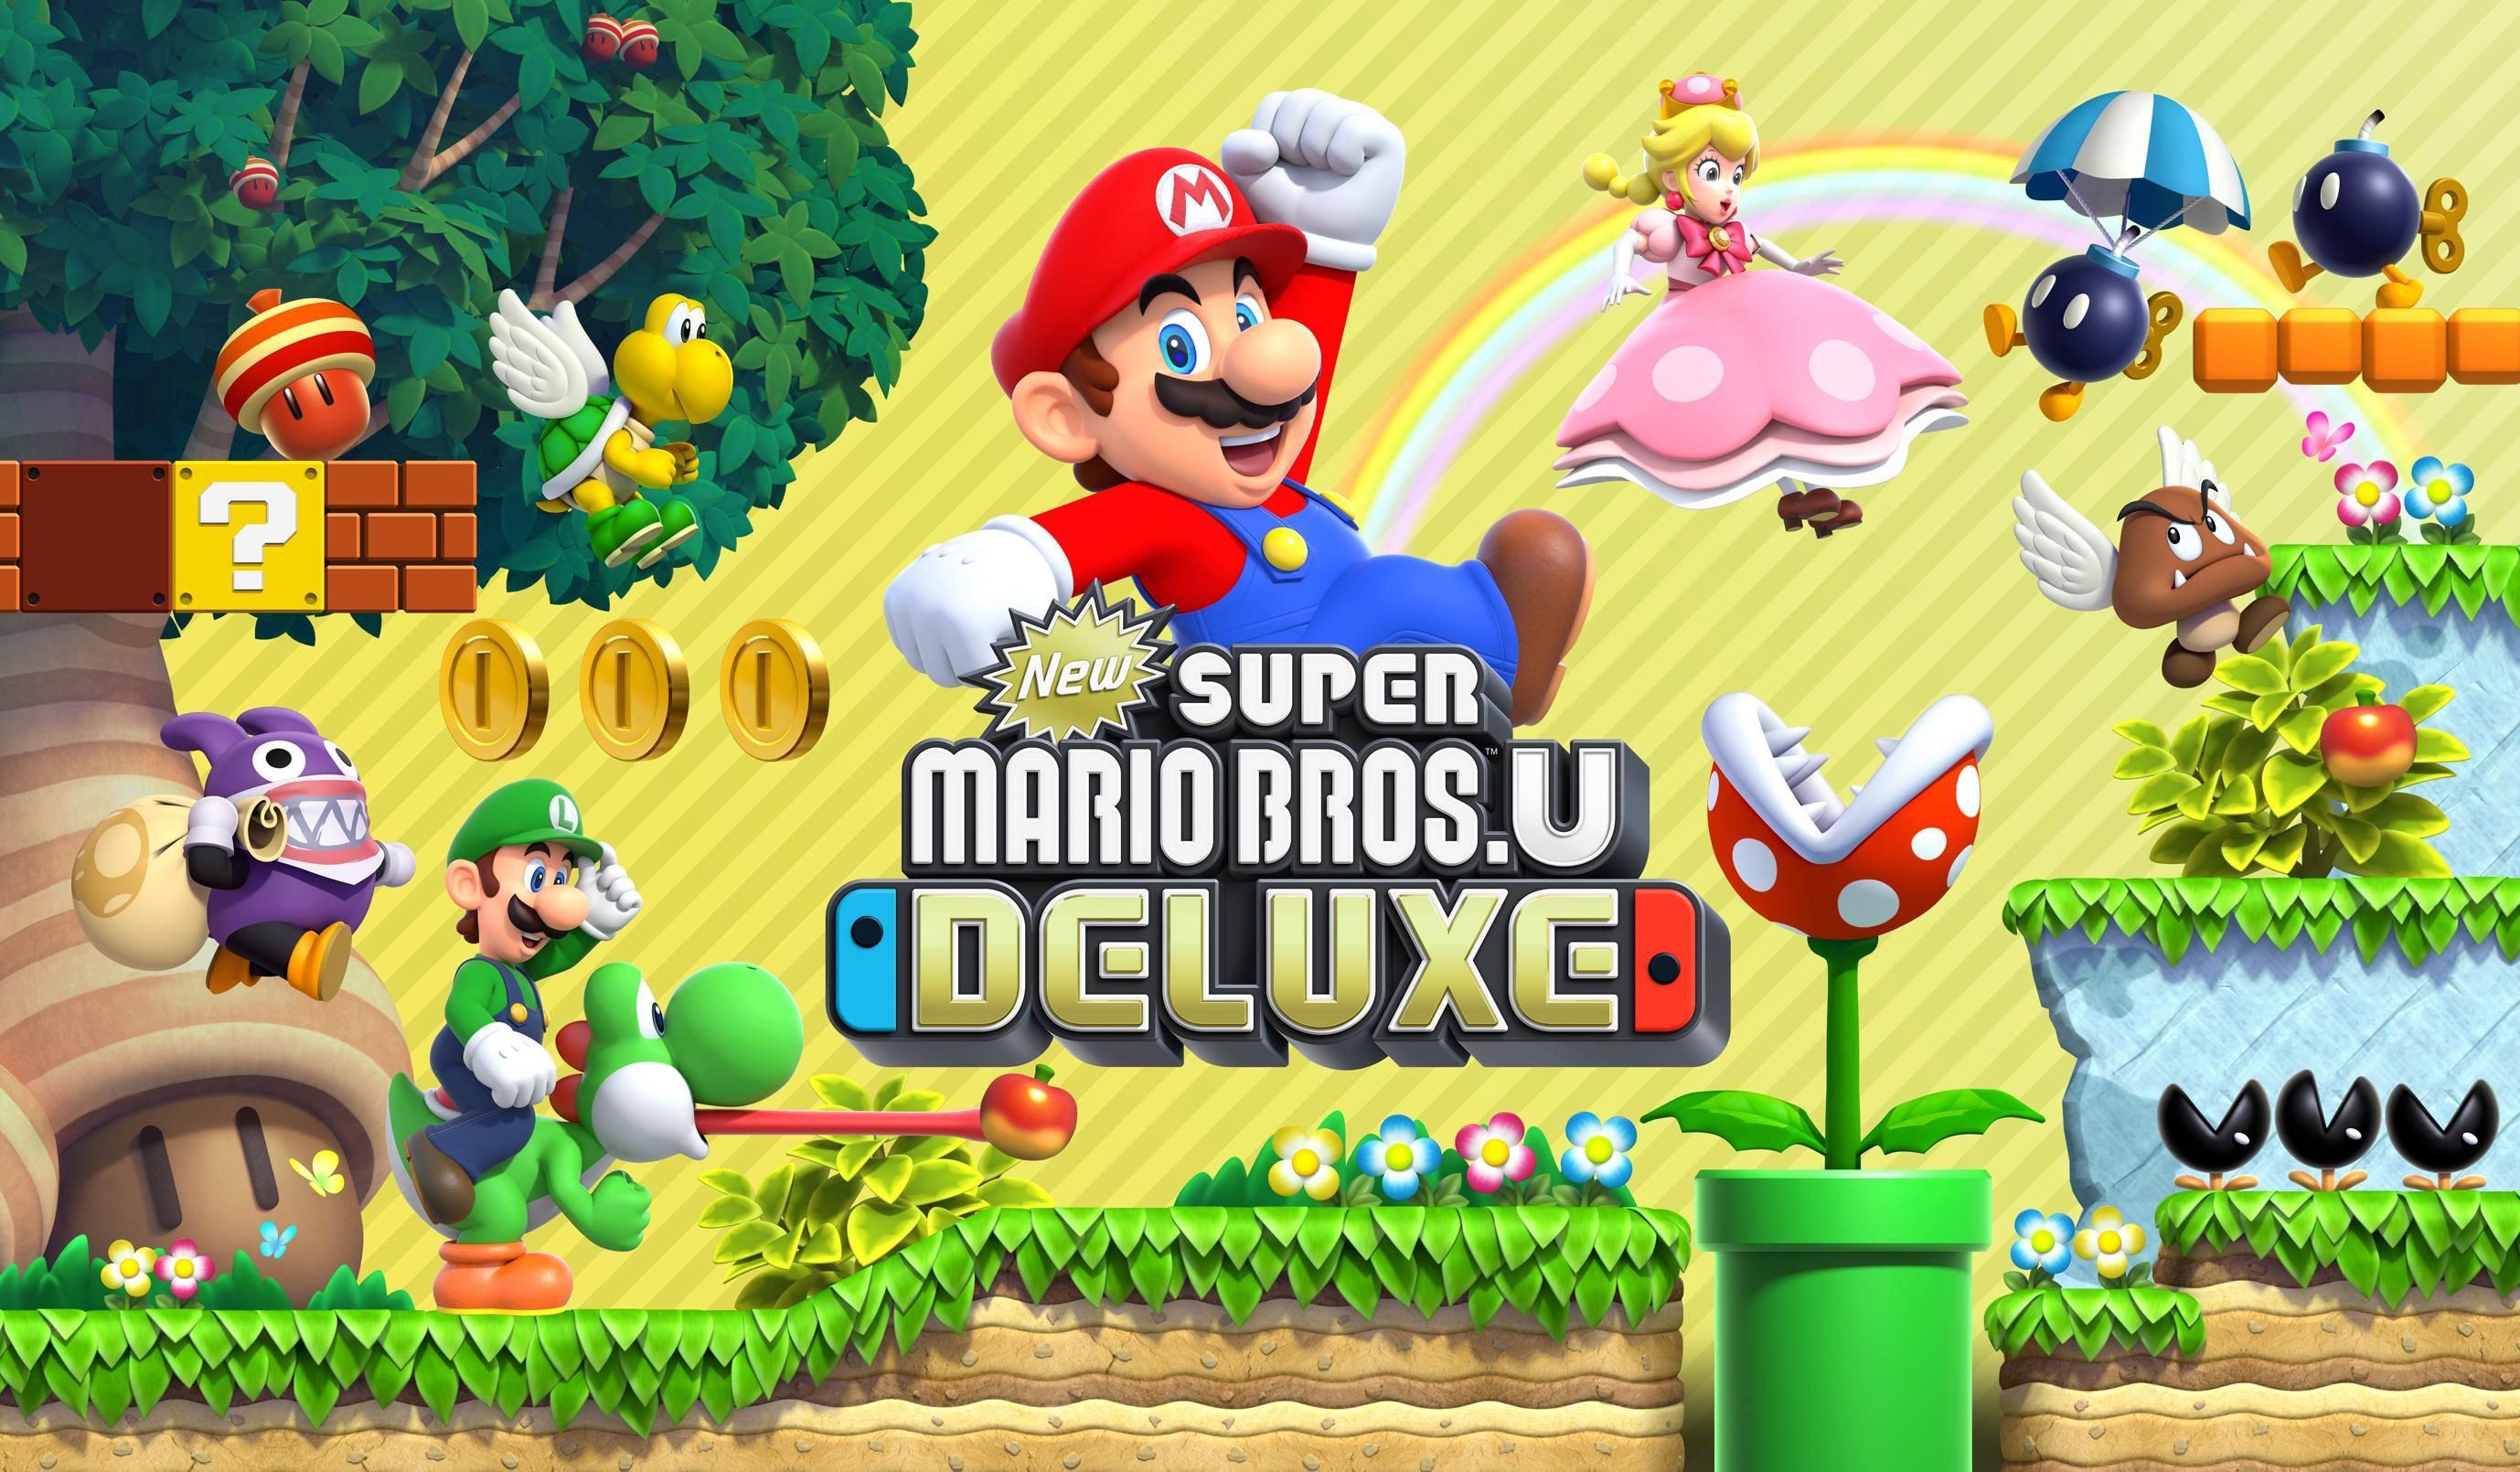 New Super Mario Bros U  Deluxe Isn't Anything New, But